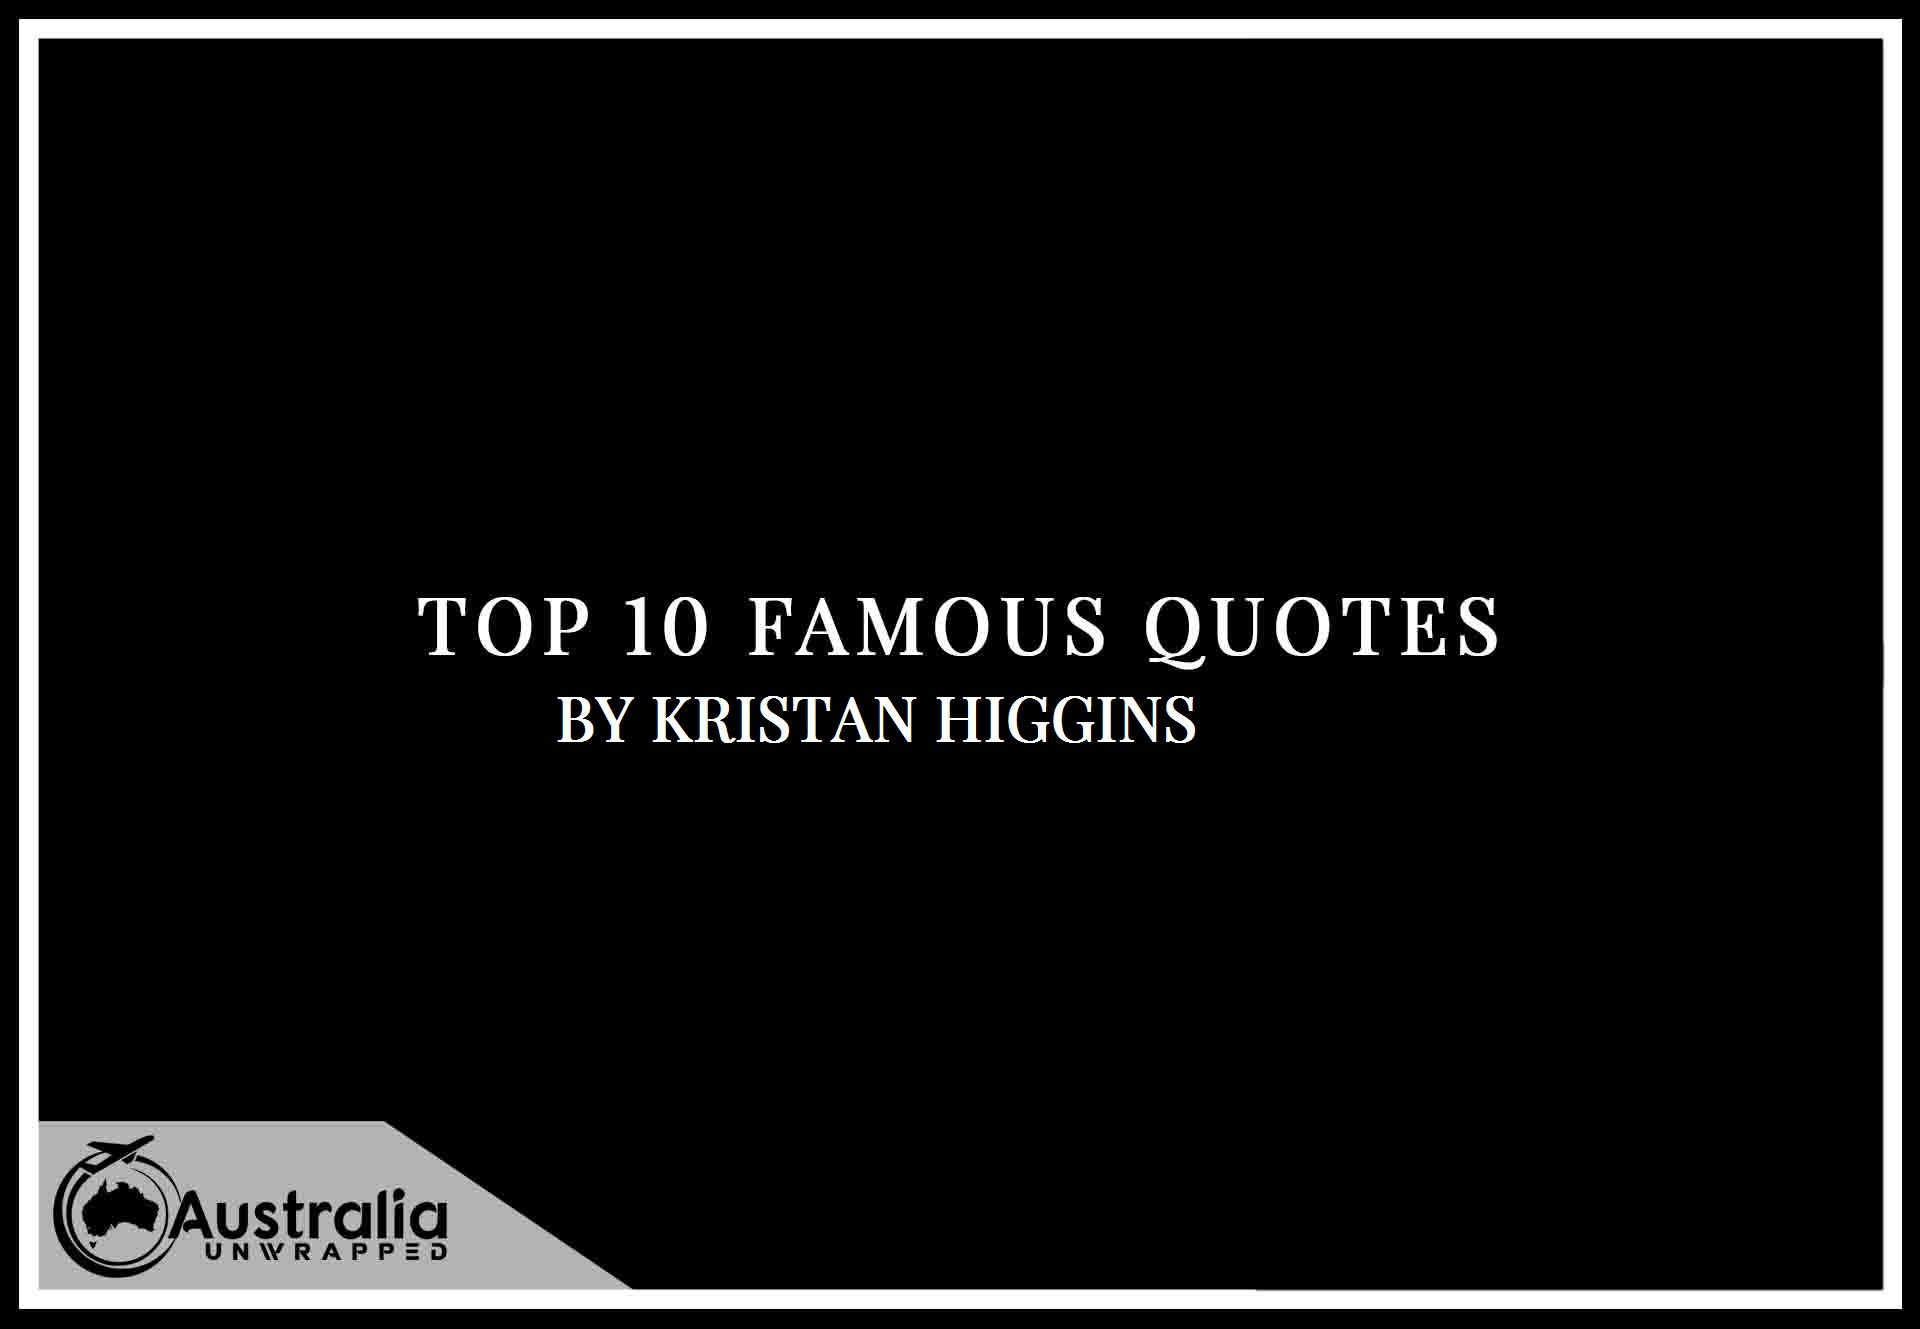 Kristan Higgins's Top 10 Popular and Famous Quotes